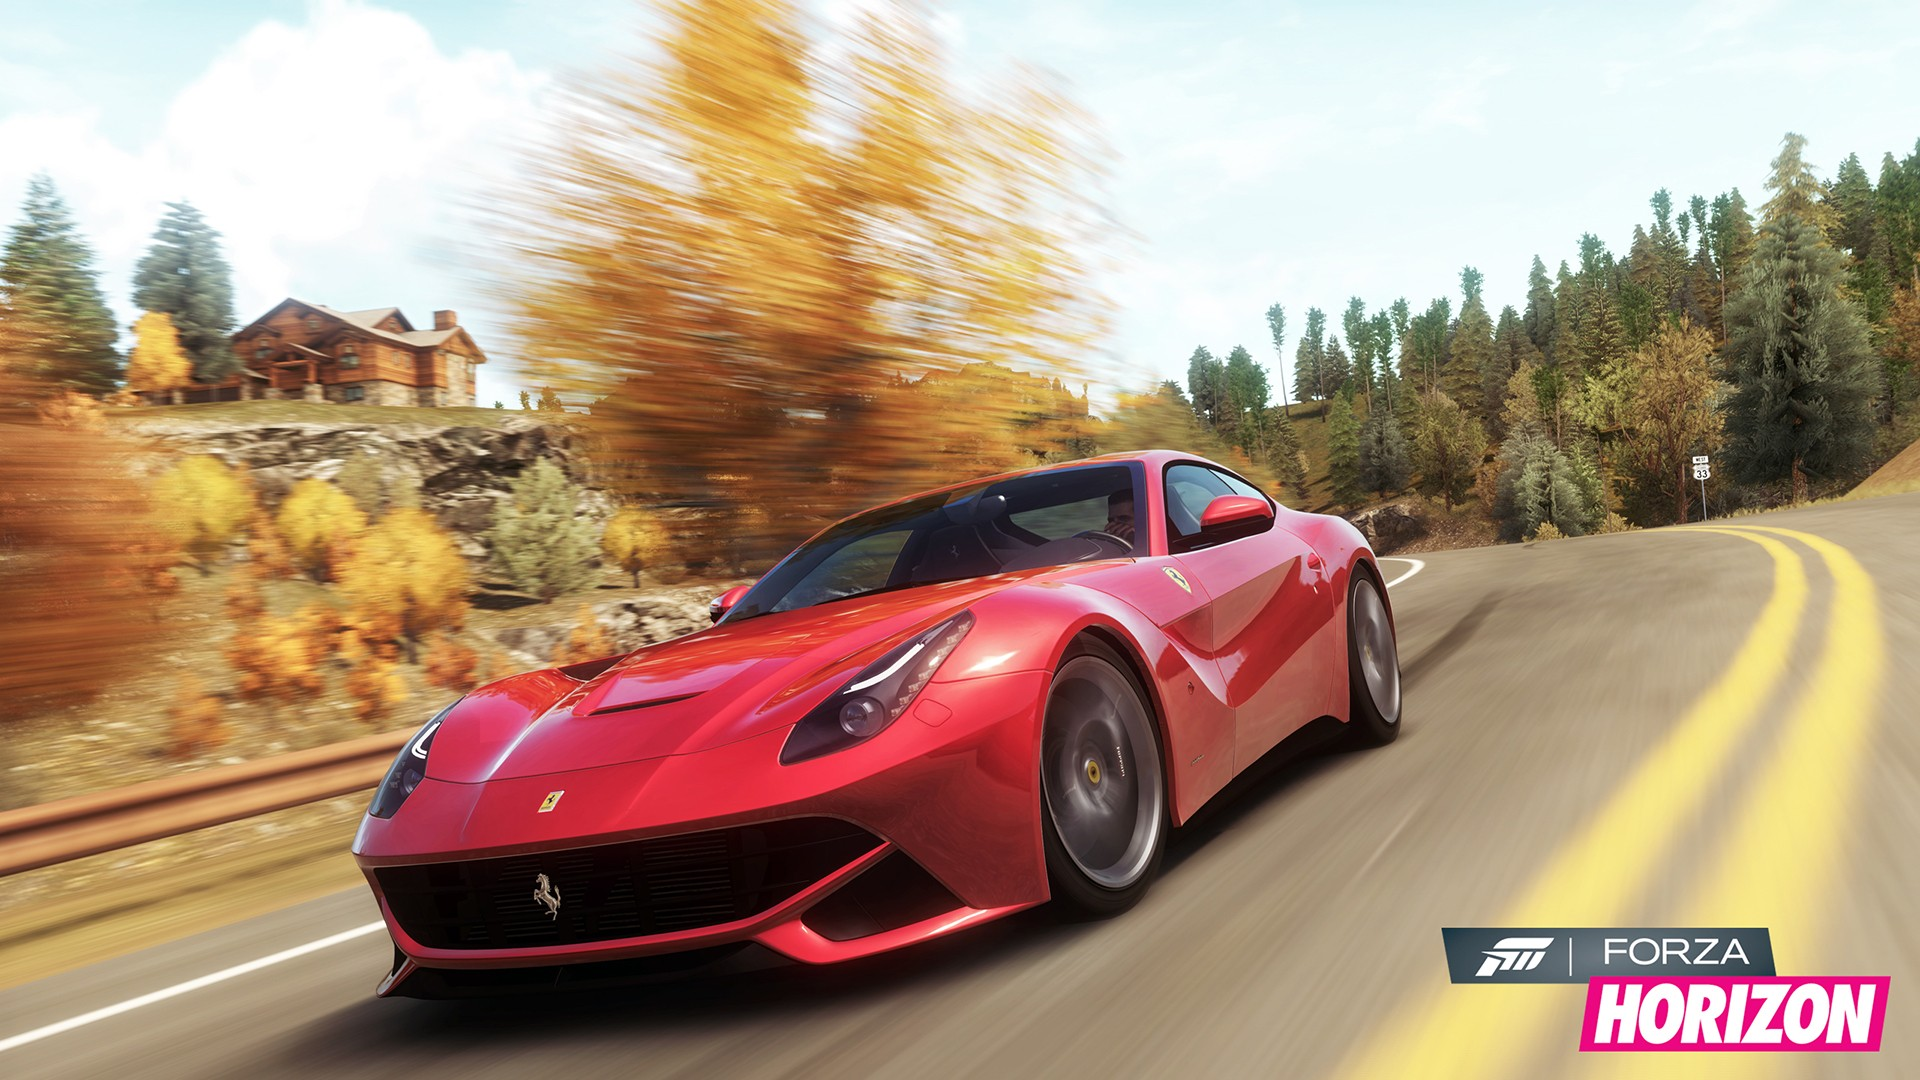 26 forza horizon hd wallpapers backgrounds wallpaper abyss. Black Bedroom Furniture Sets. Home Design Ideas